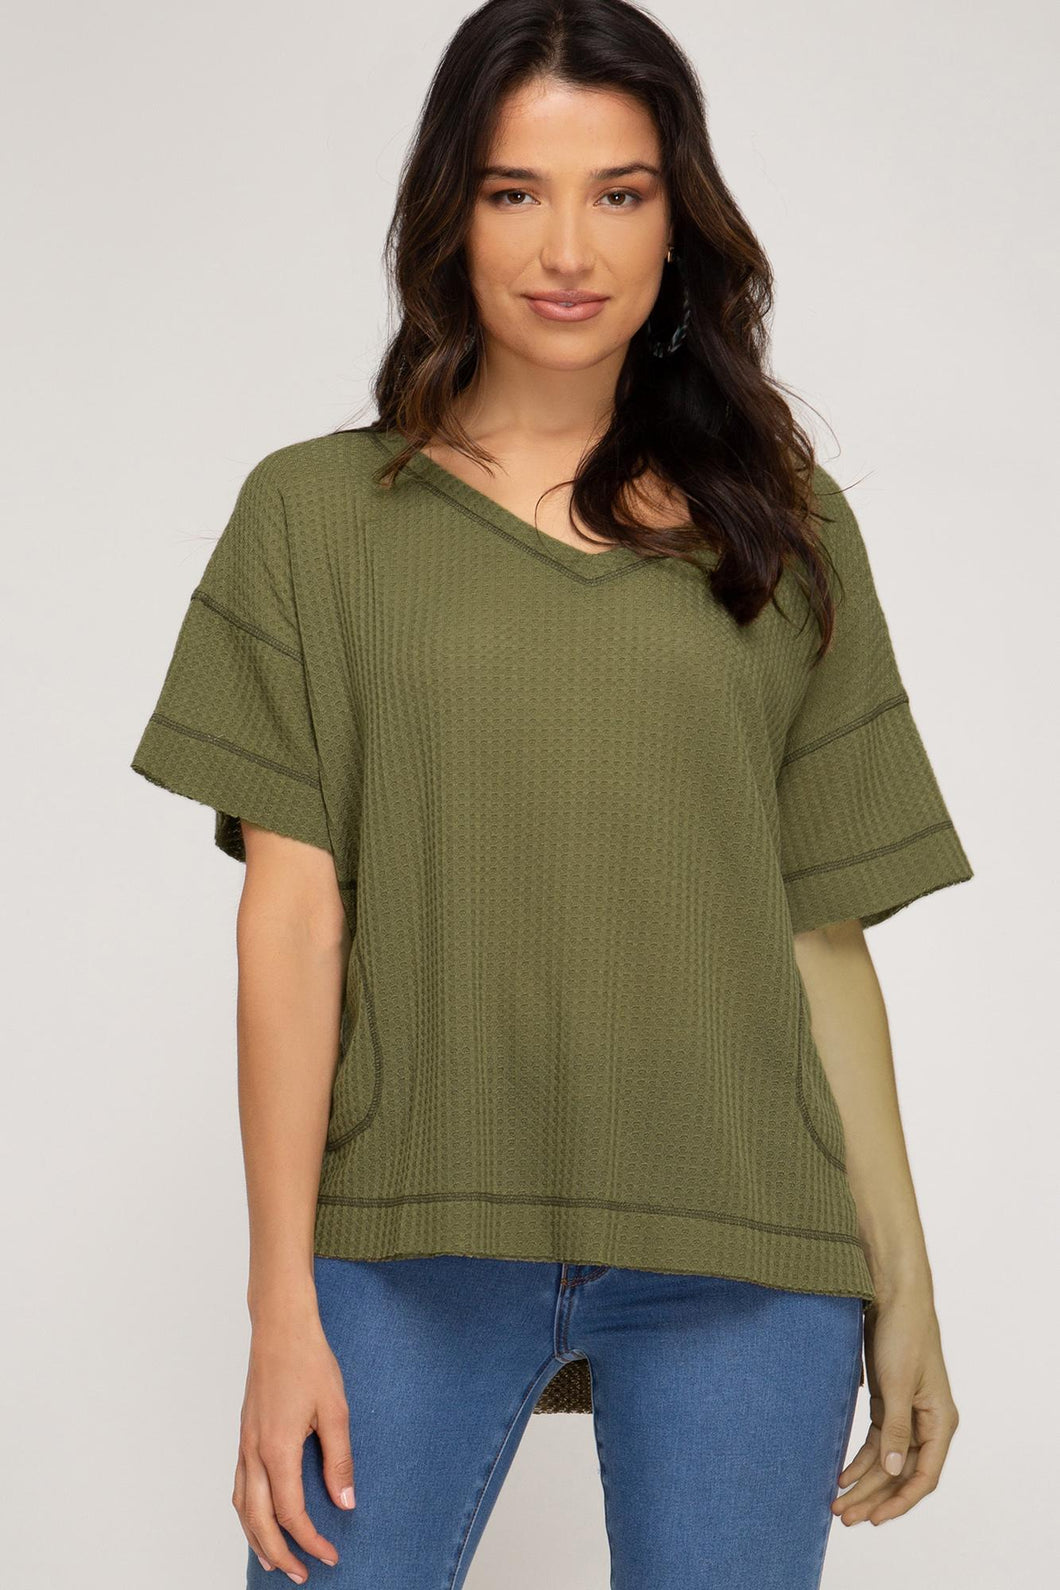 Emerson Thermal Knit Top Olive